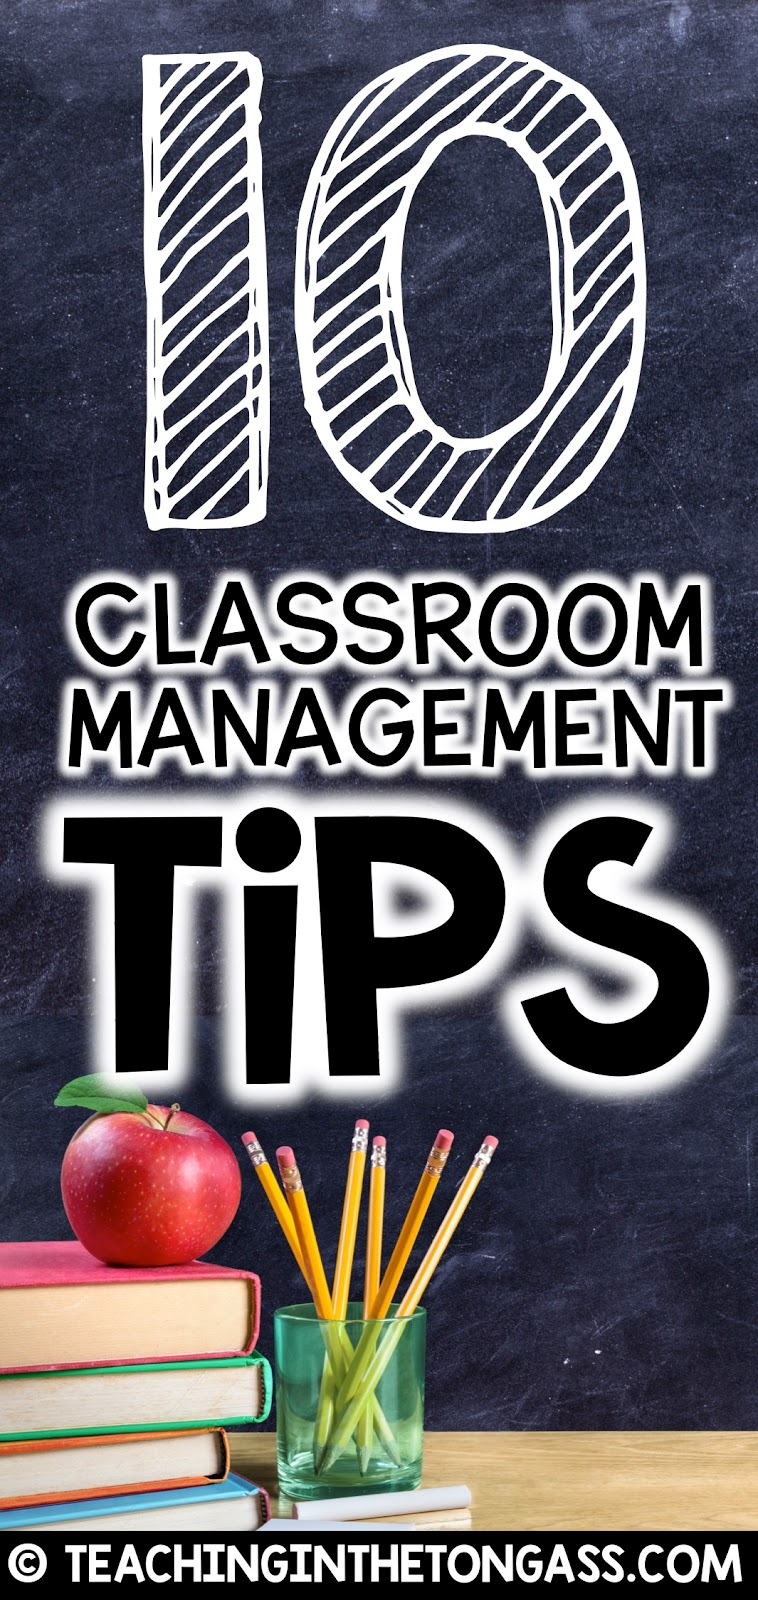 Classroom Management Ideas : Classroom management tips teaching in the tongass